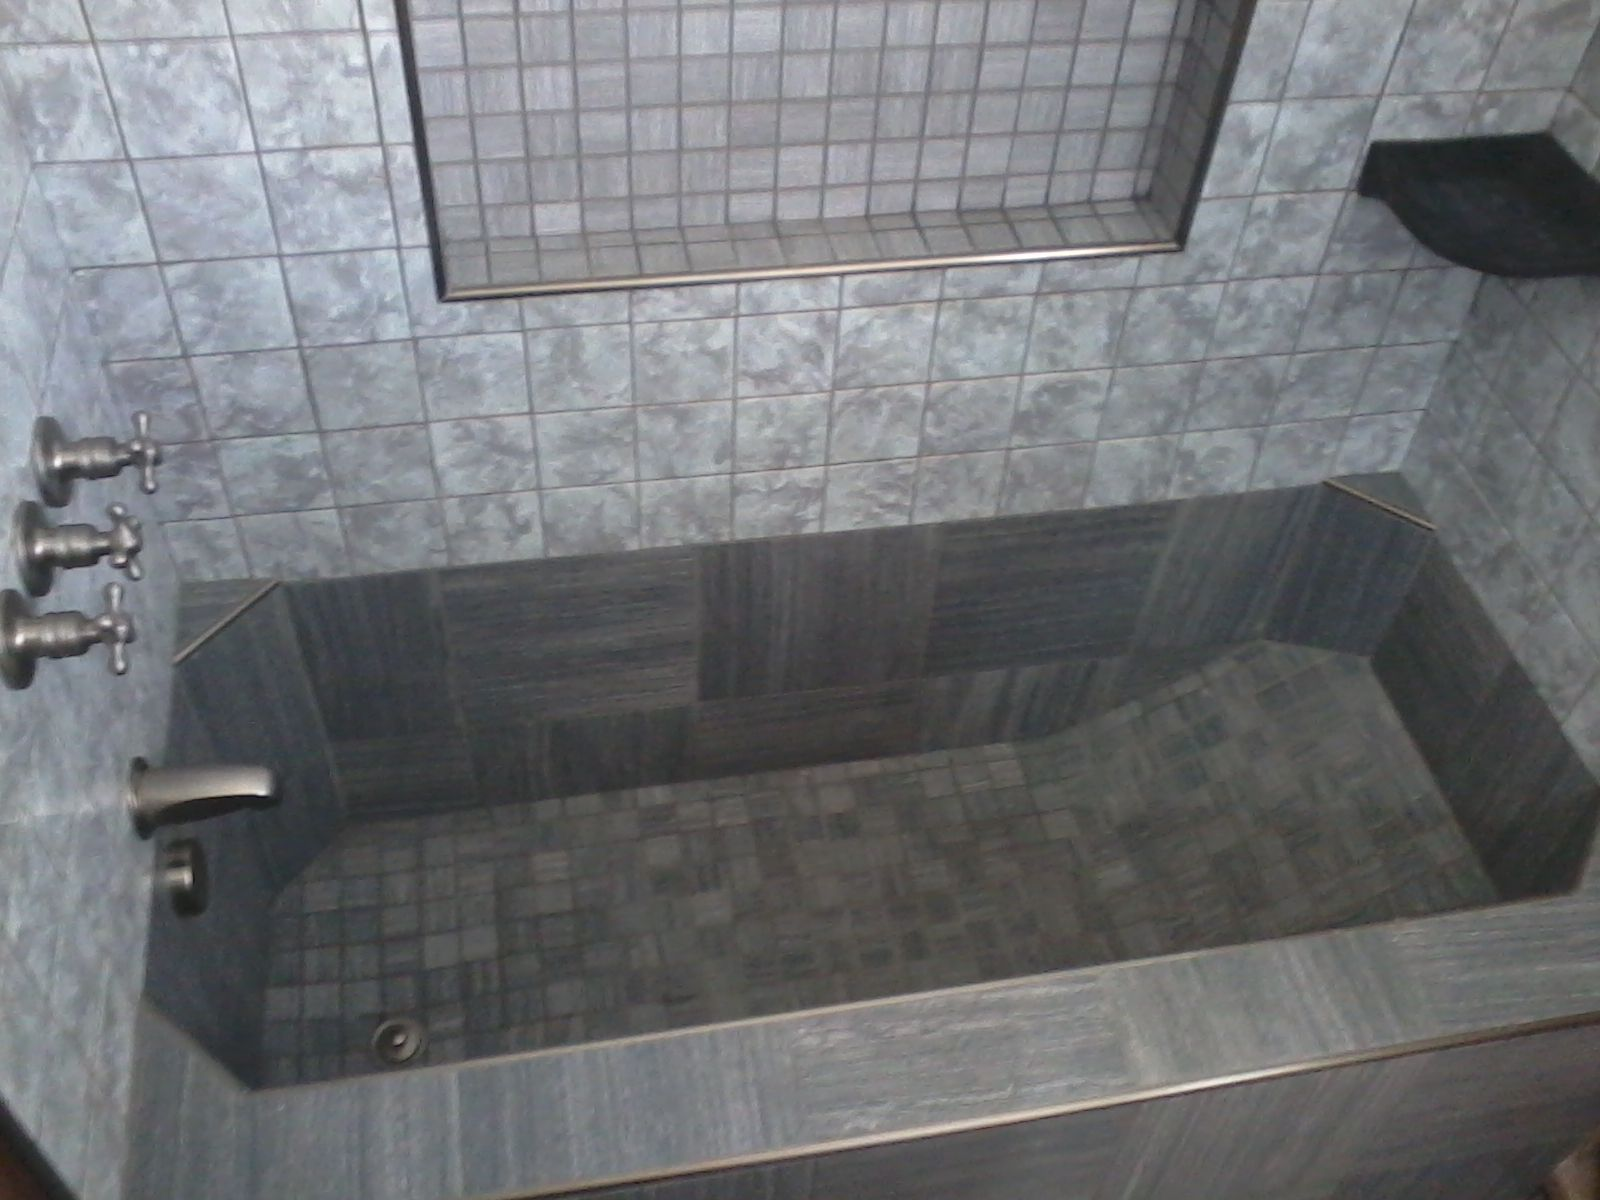 Bathroom Design Virginia Beach tile tub | check this out this is a roman style tub in a virginia